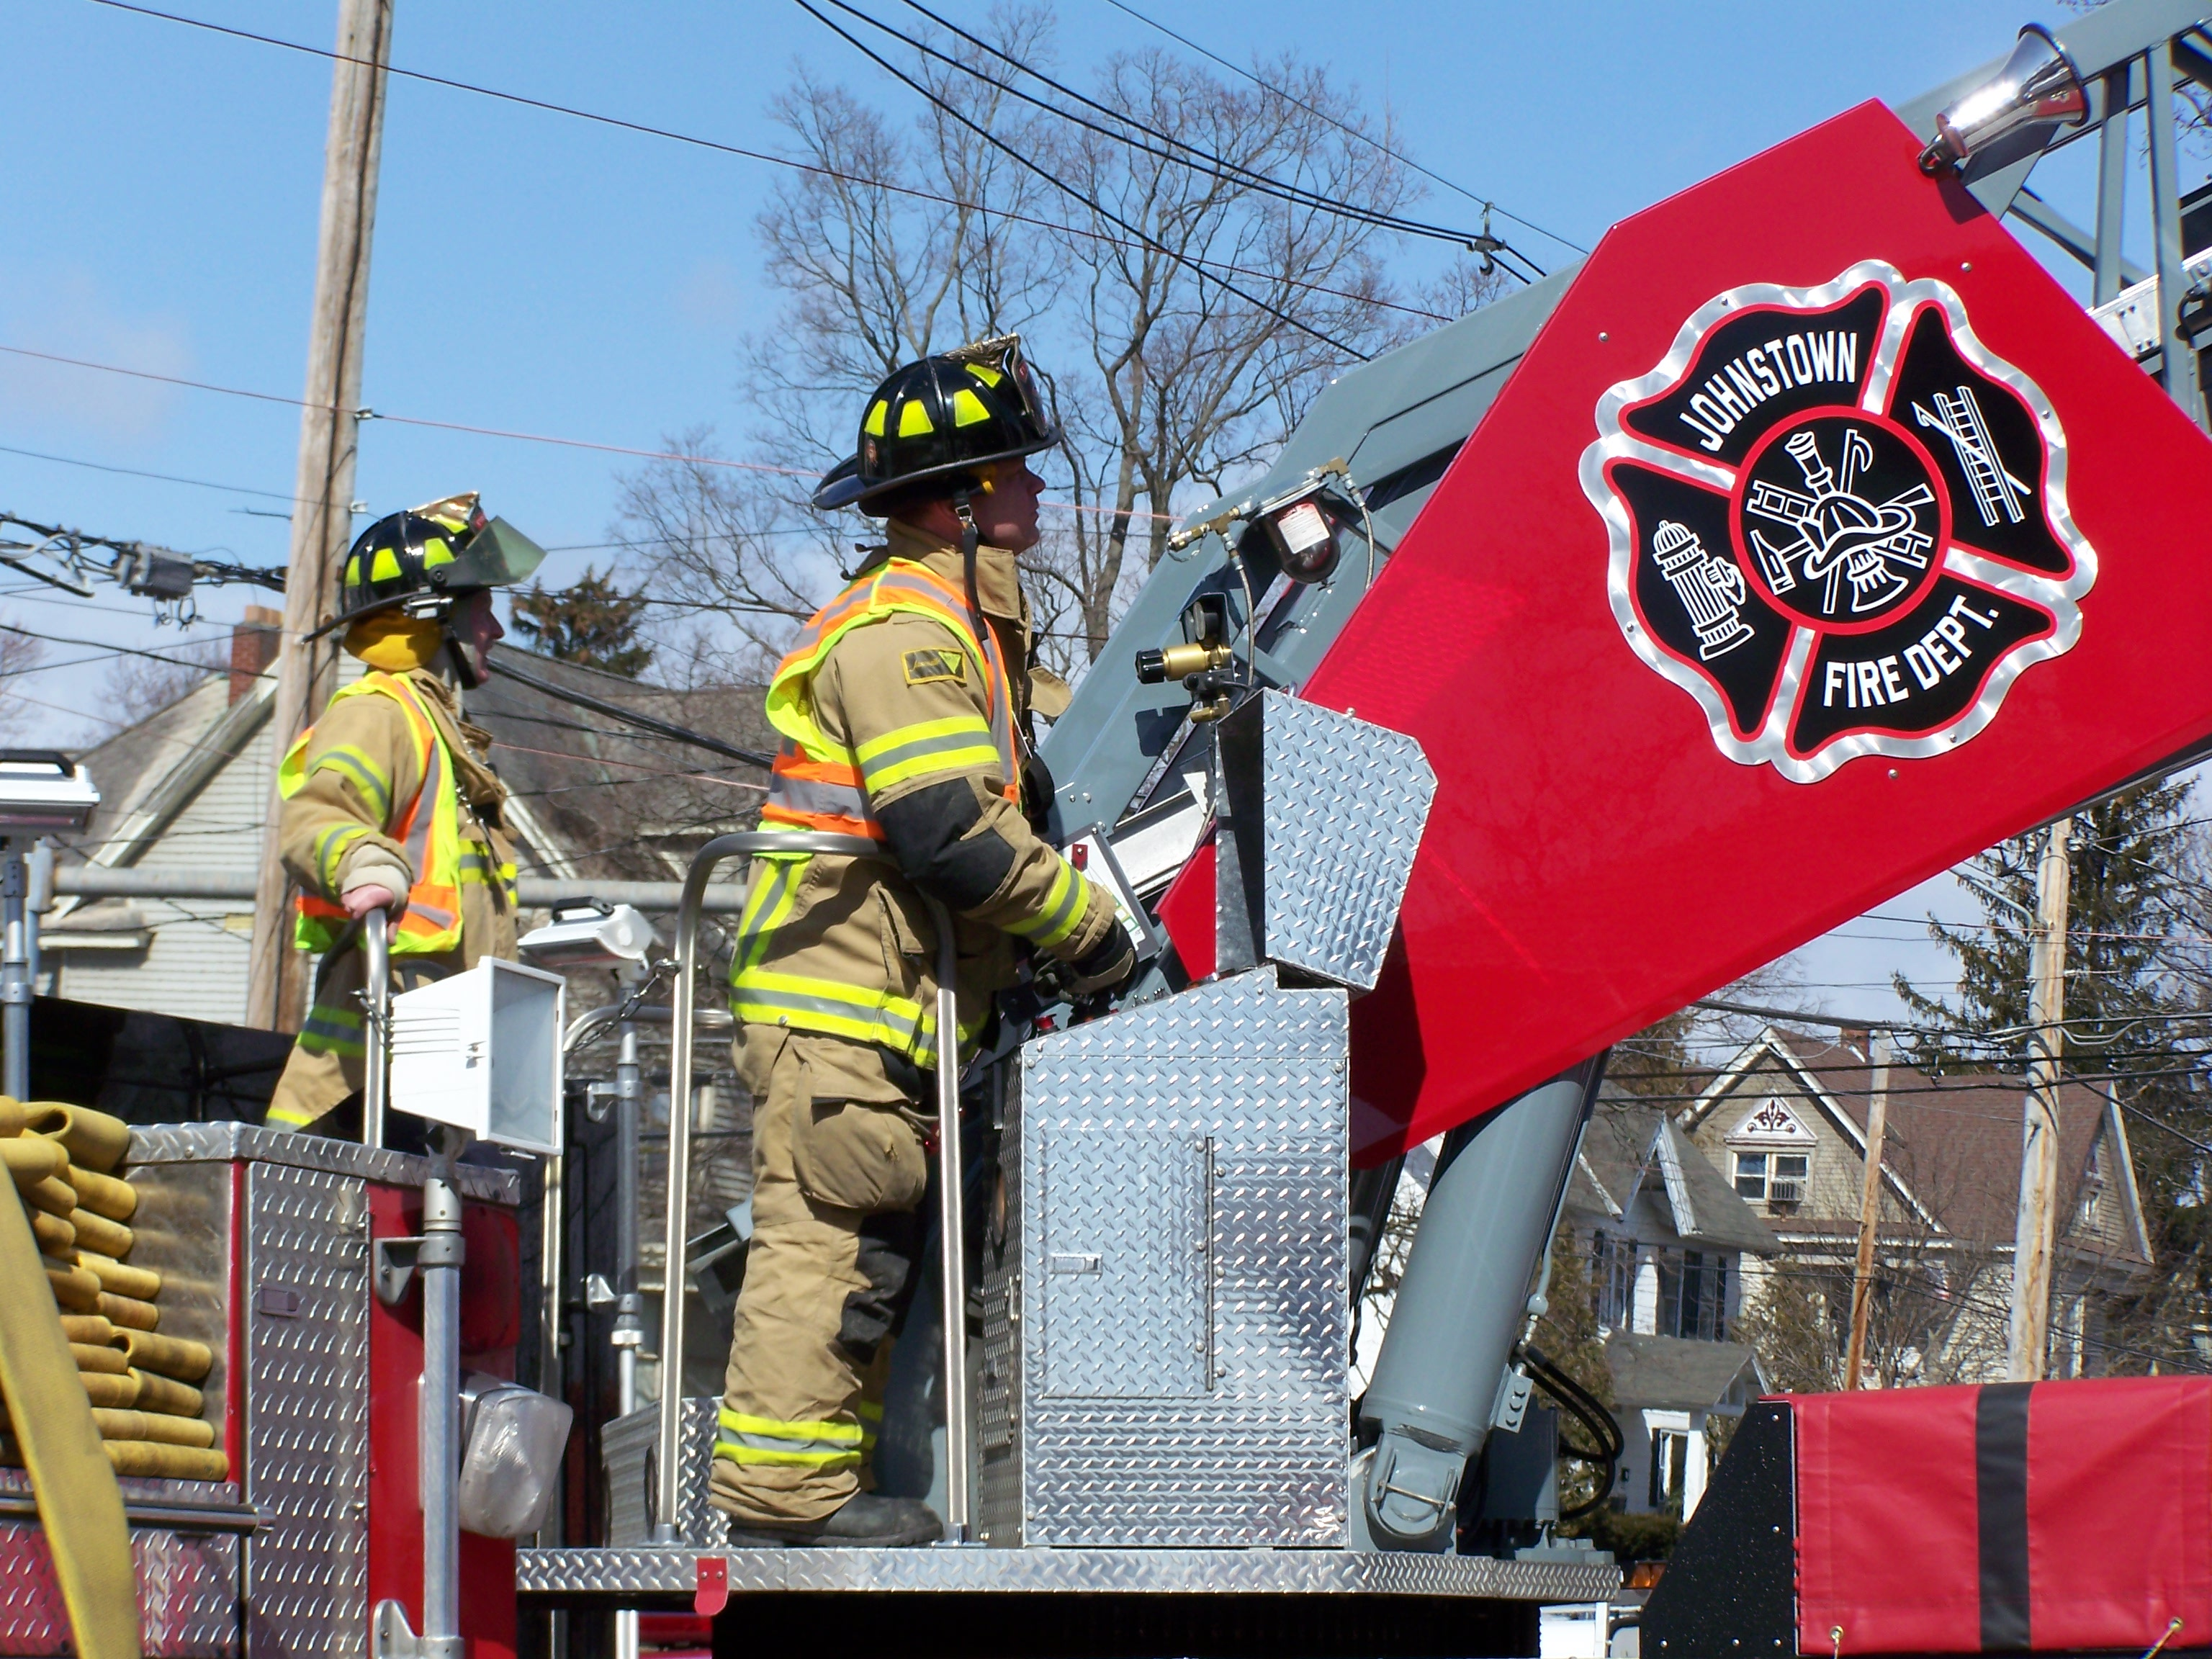 Firefighters on truck by flag